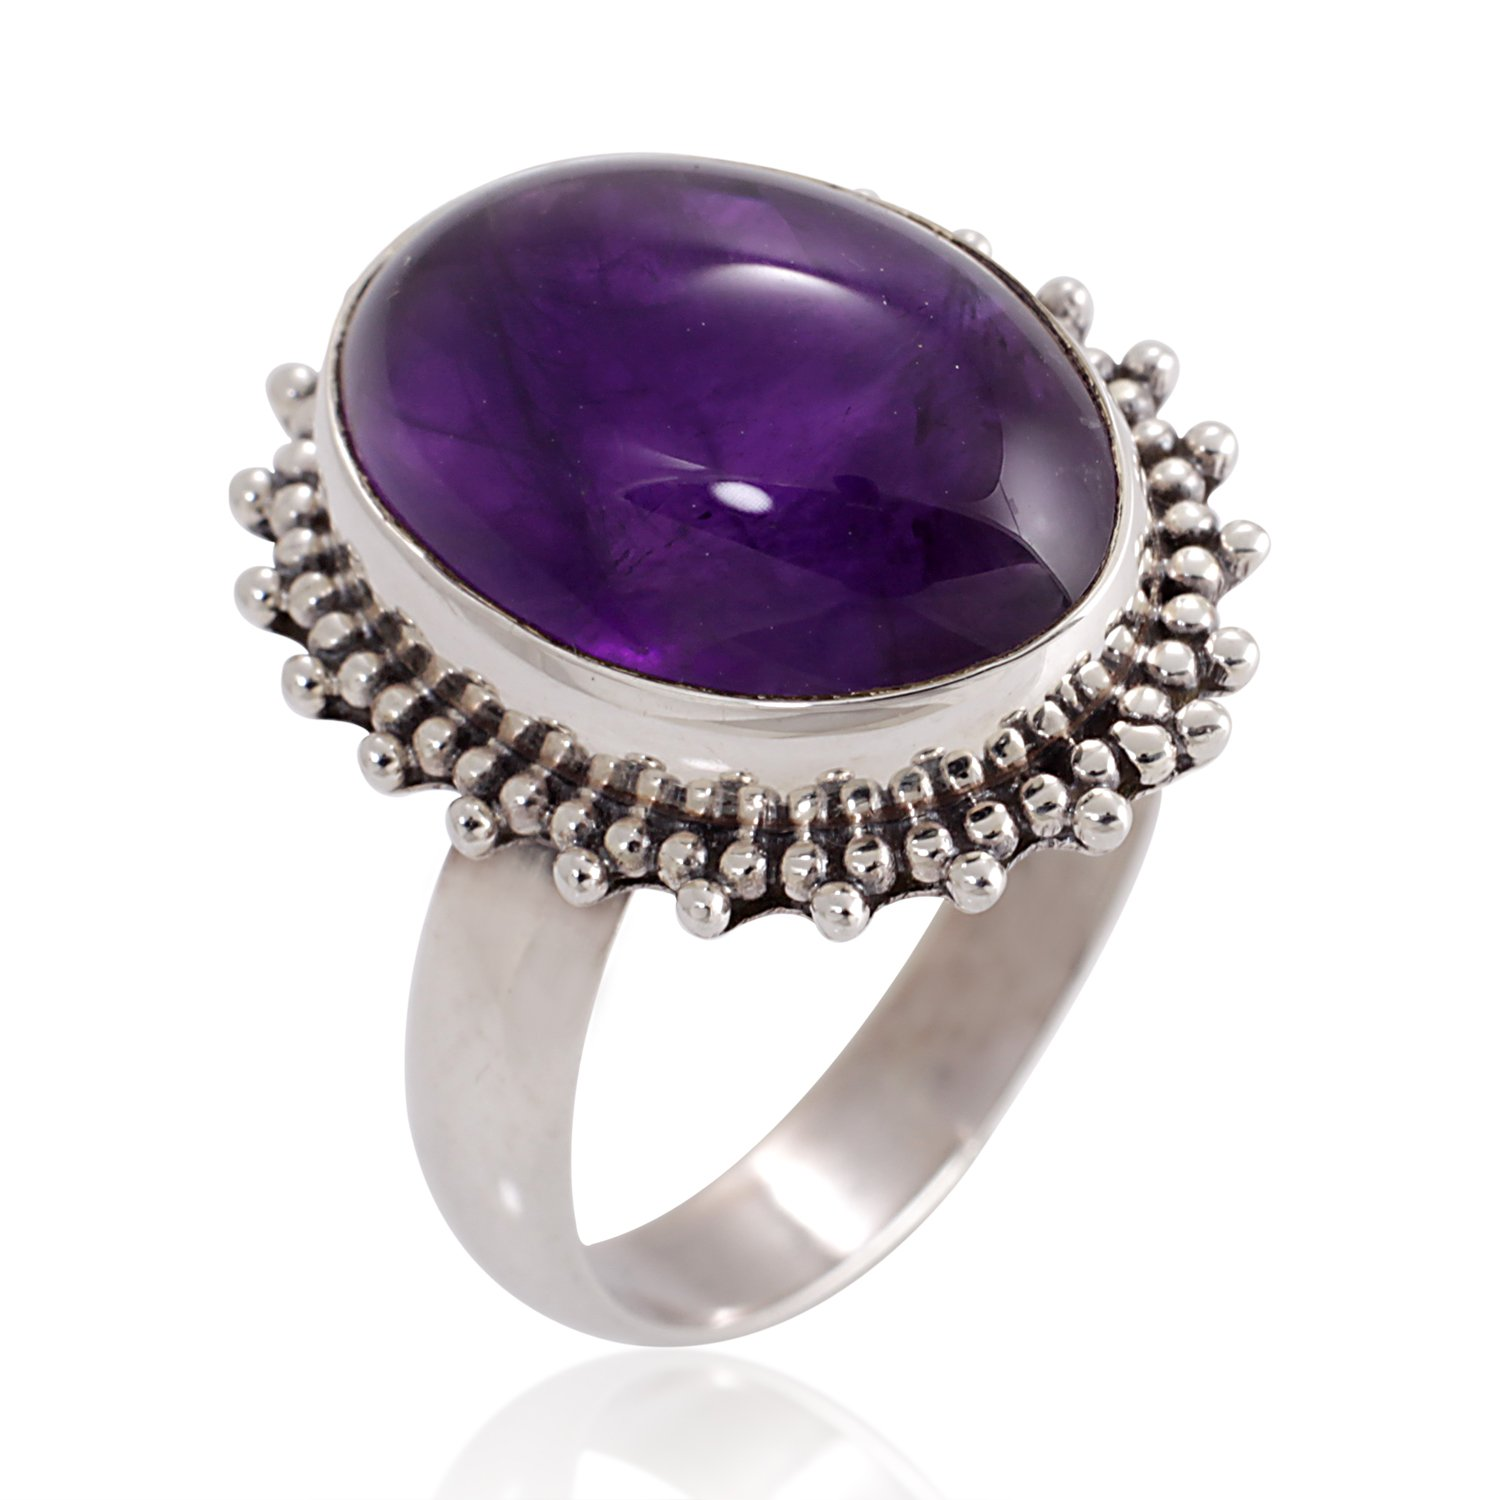 Chuvora 925 Oxidized Sterling Silver Natural Amethyst Gemstone Oval Shaped Vintage Band Ring Size 6